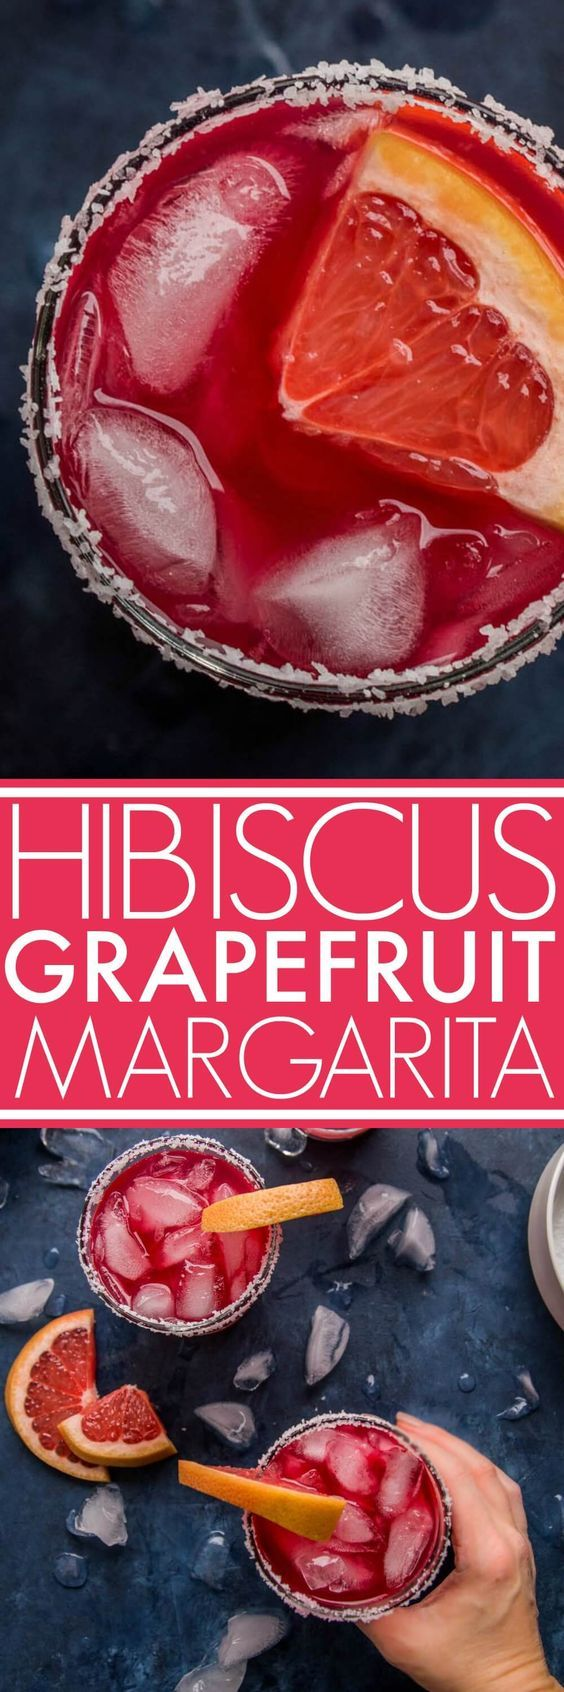 These Hibiscus Margaritas are so refreshing and a perfect balance of sweet and sour. Made with hibiscus tea concentrate, grapefruit juice and tequila. The ingredients are simple, but the taste is amazing!#cocktail #margarita #hibiscusmargarita #margaritarecipe #grapefruitmargarita via @platingspairing